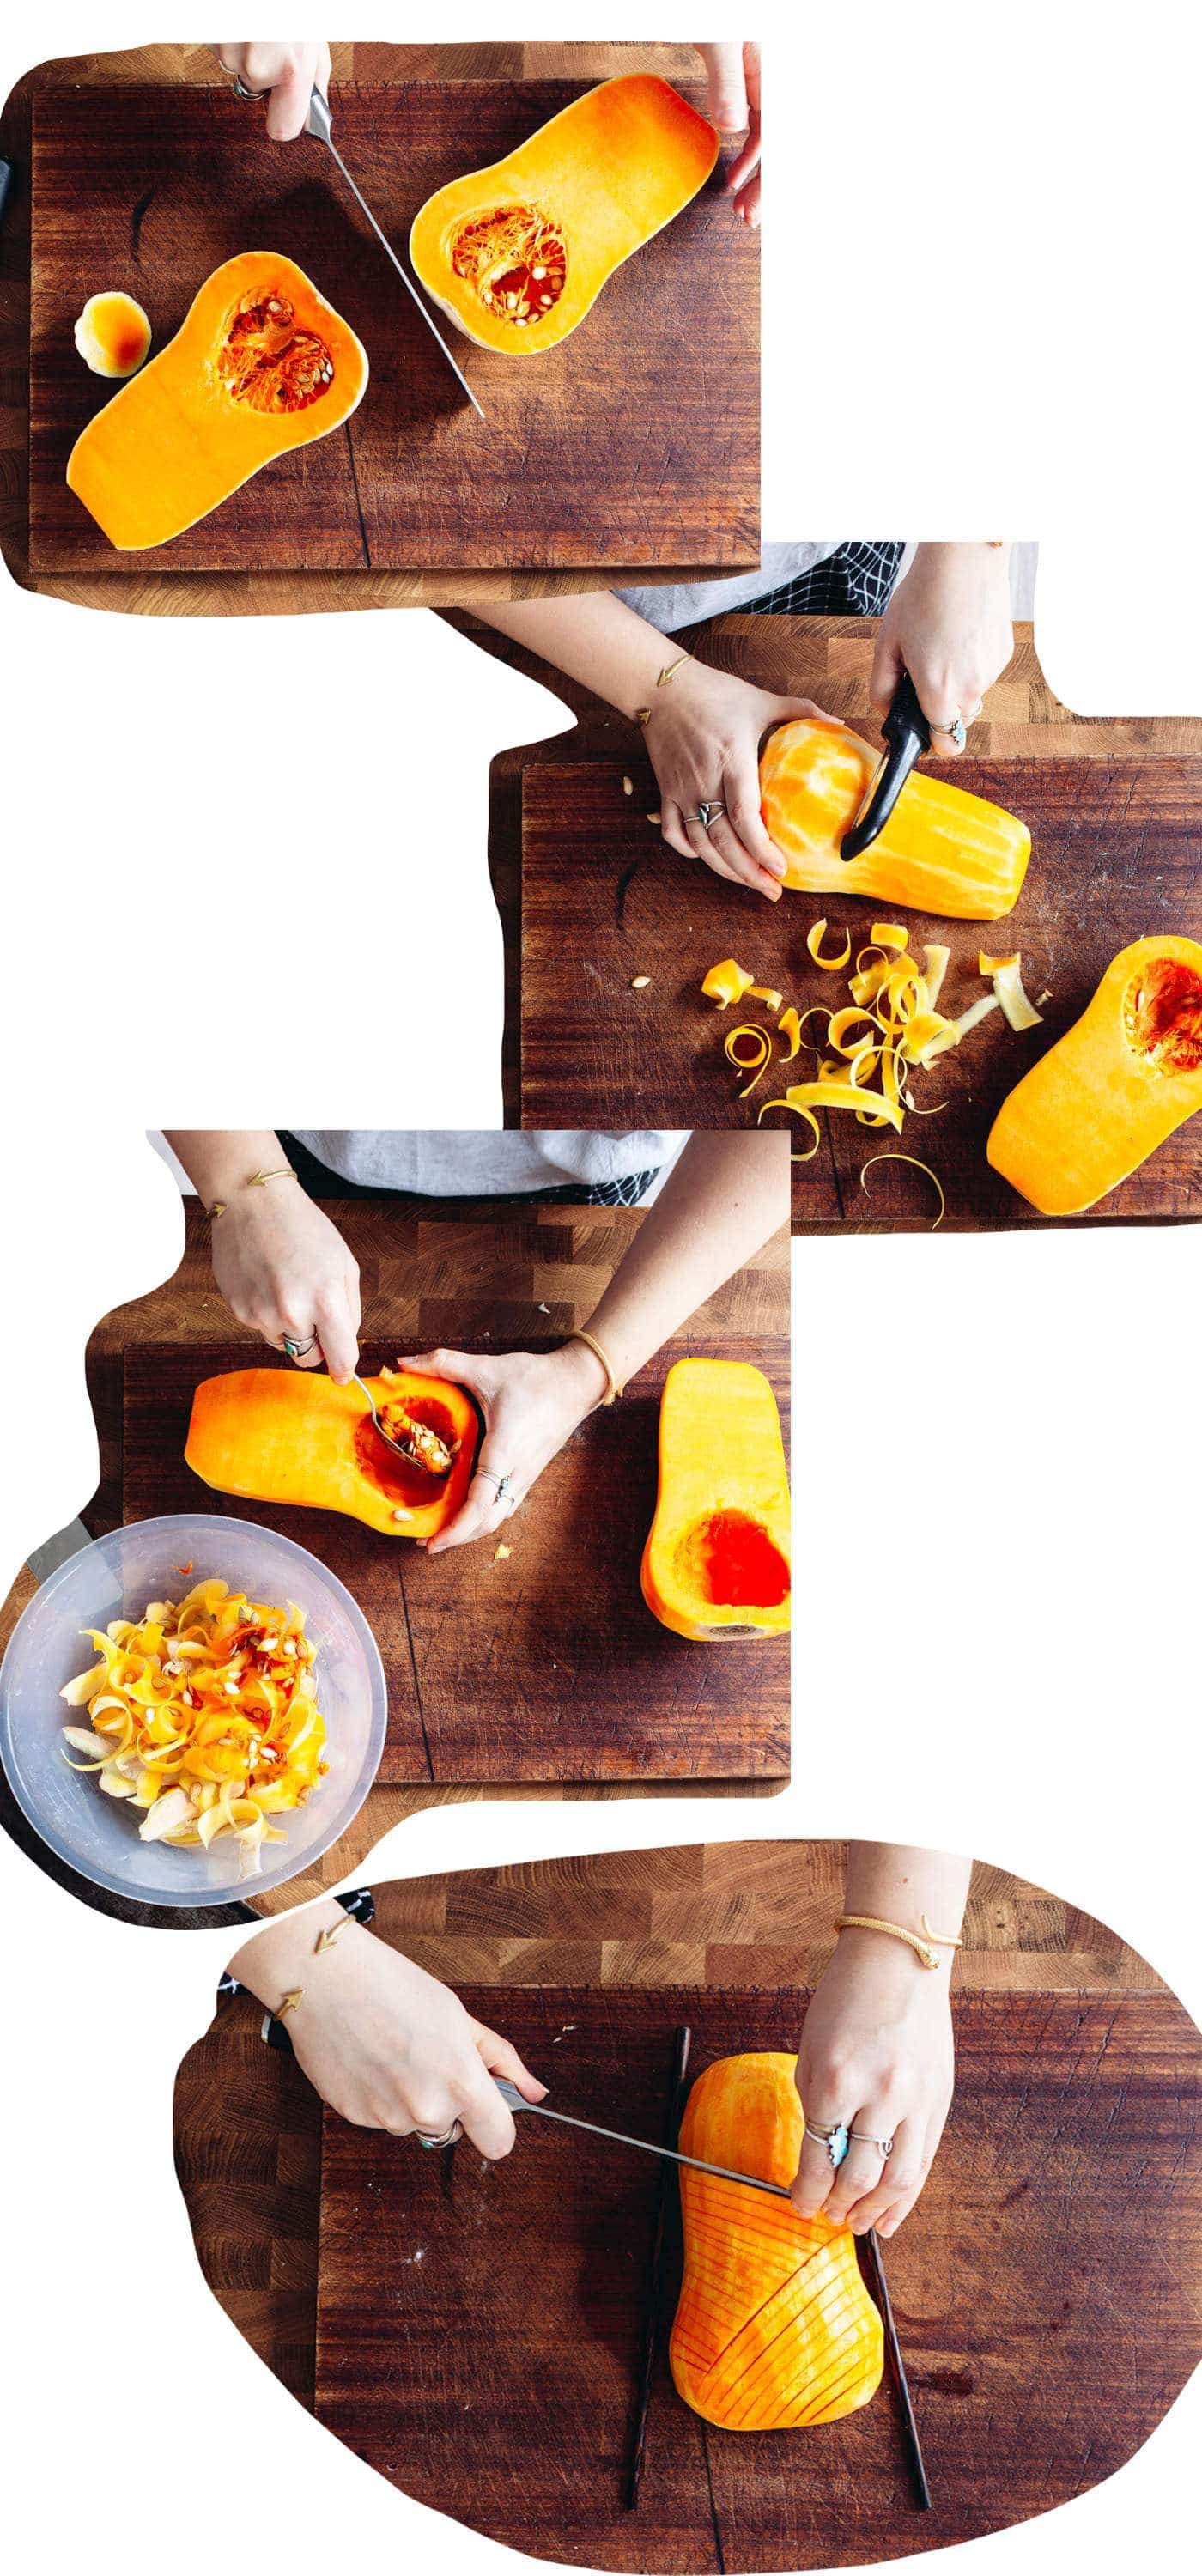 Food blogger Izy Hossack shows how to make Hassleback Squash with Garlic-Sage Butter